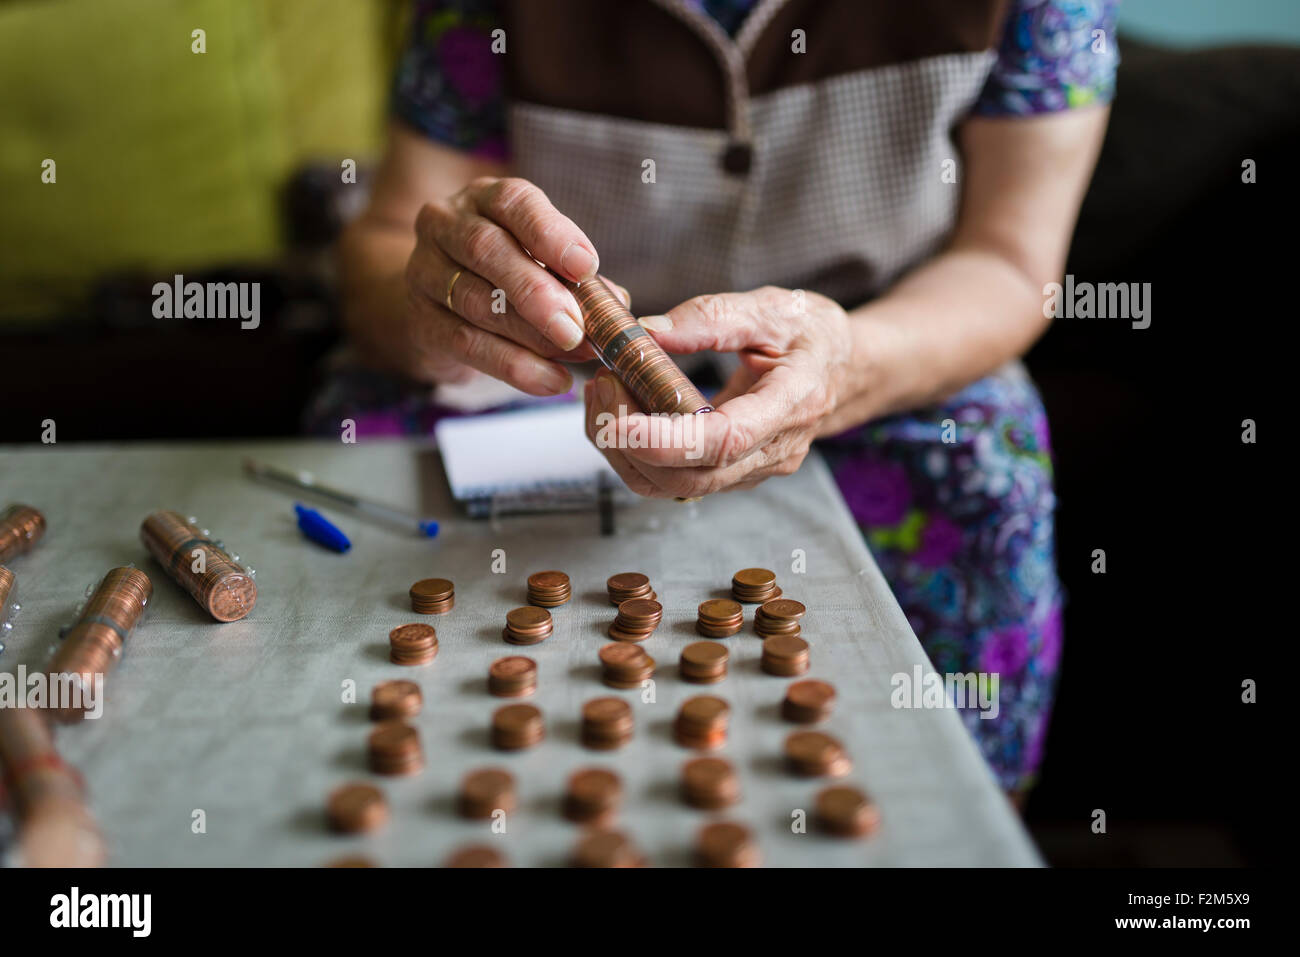 Elderly woman counting money, making stacks of Euro cents - Stock Image